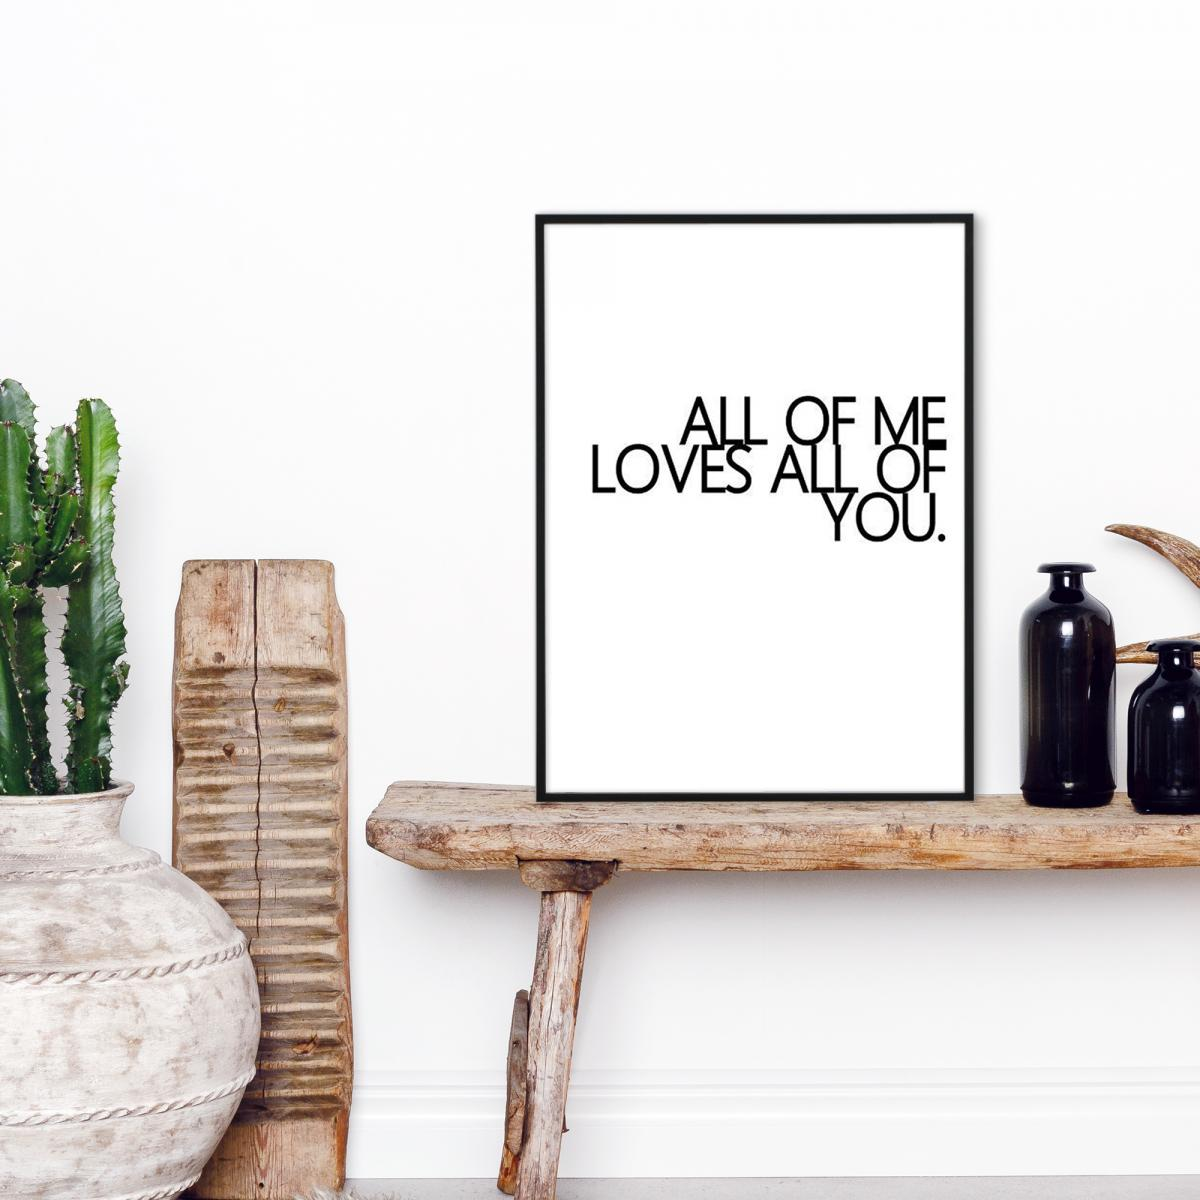 All of me - 30x40 cm